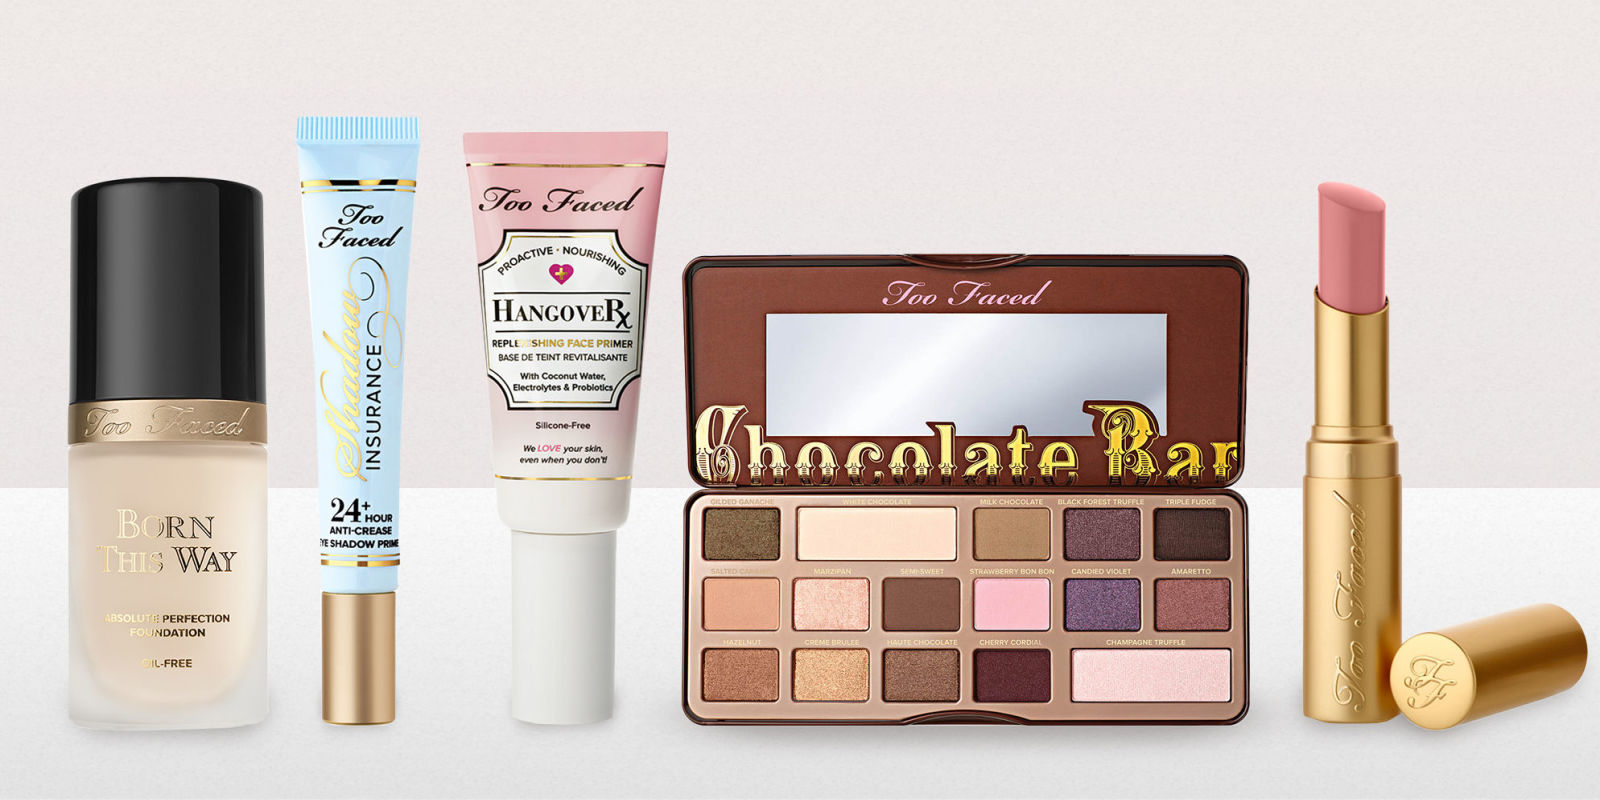 Top 10 Too Faced Cosmetics Makeup Picks Every Girl Needs in 2017